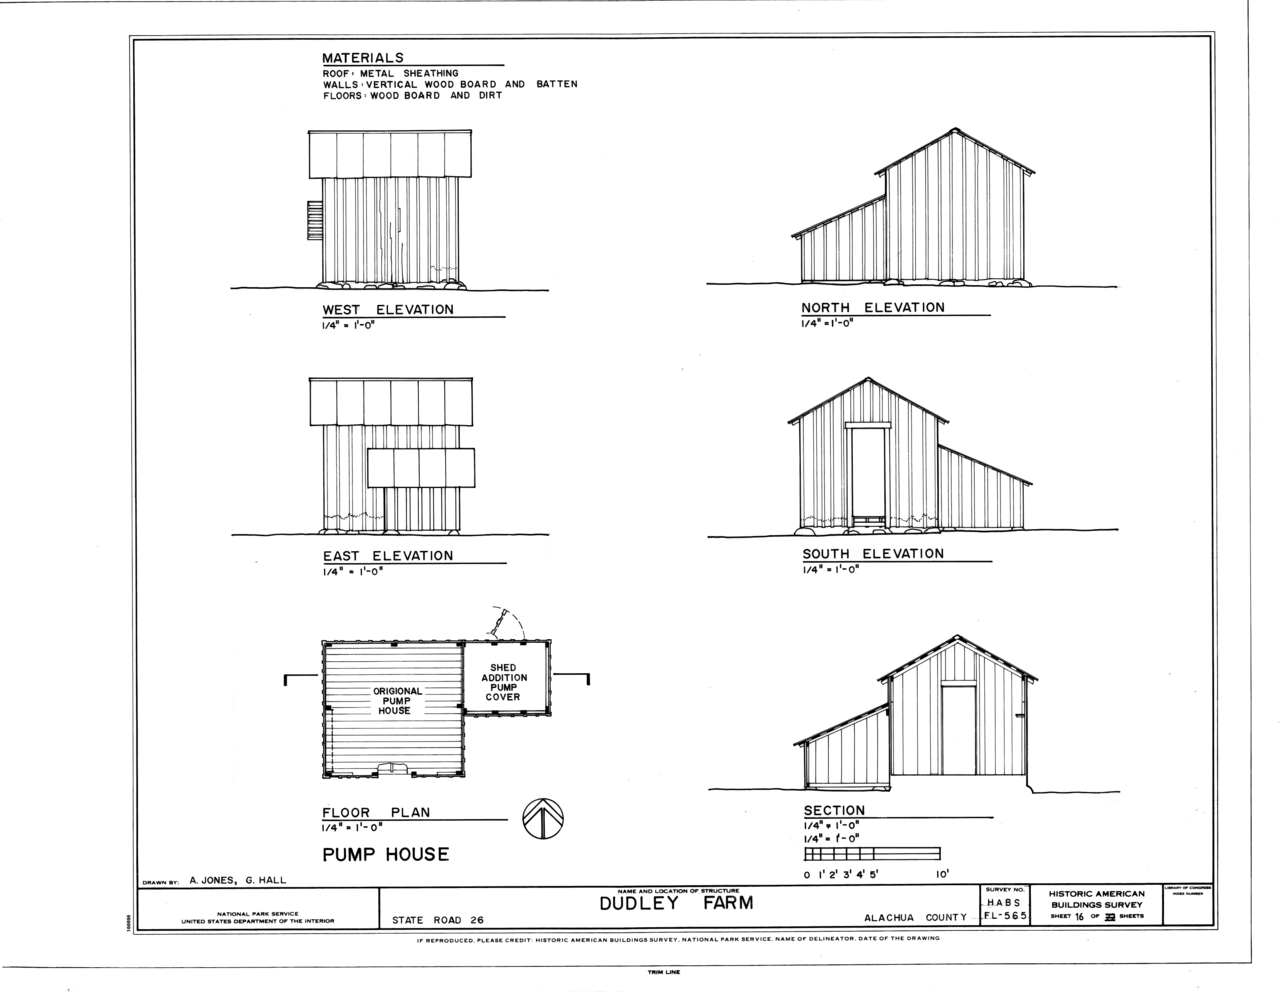 Floor Elevations House Plans : File pump house elevations floor plan and section